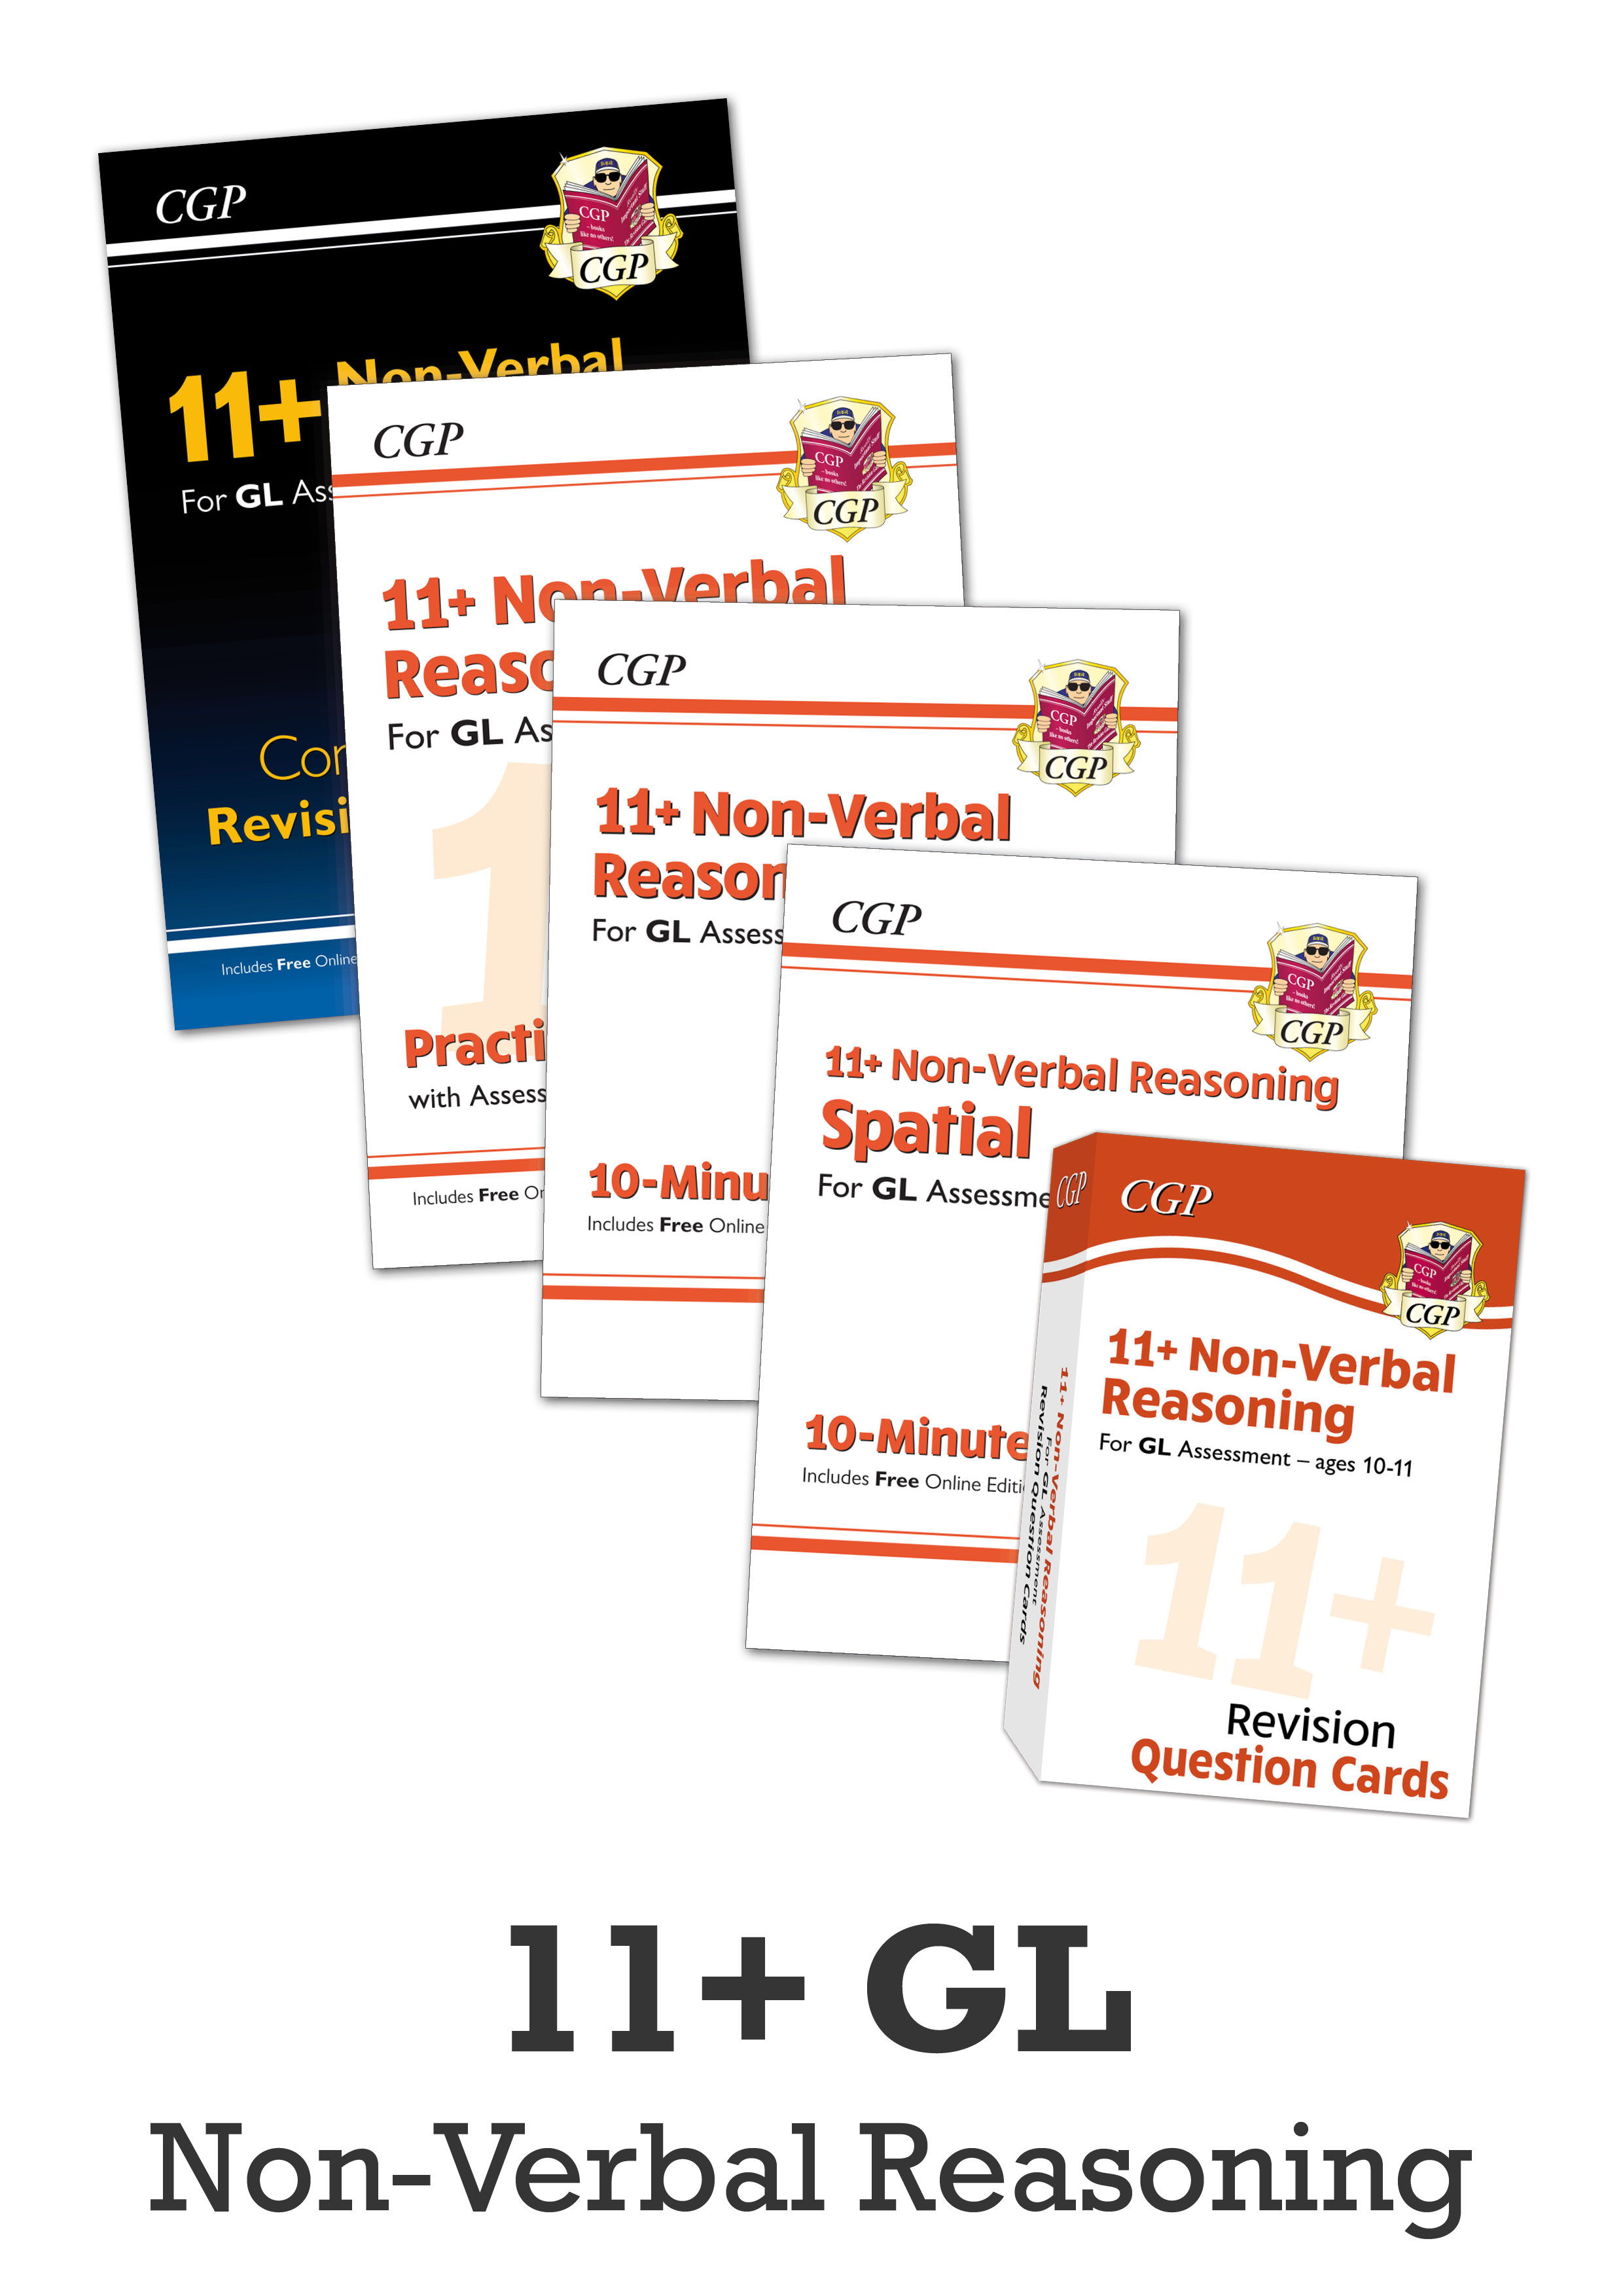 N6BE1 - 11+ GL Non-Verbal Reasoning Study & Practice Bundle - for Ages 10-11